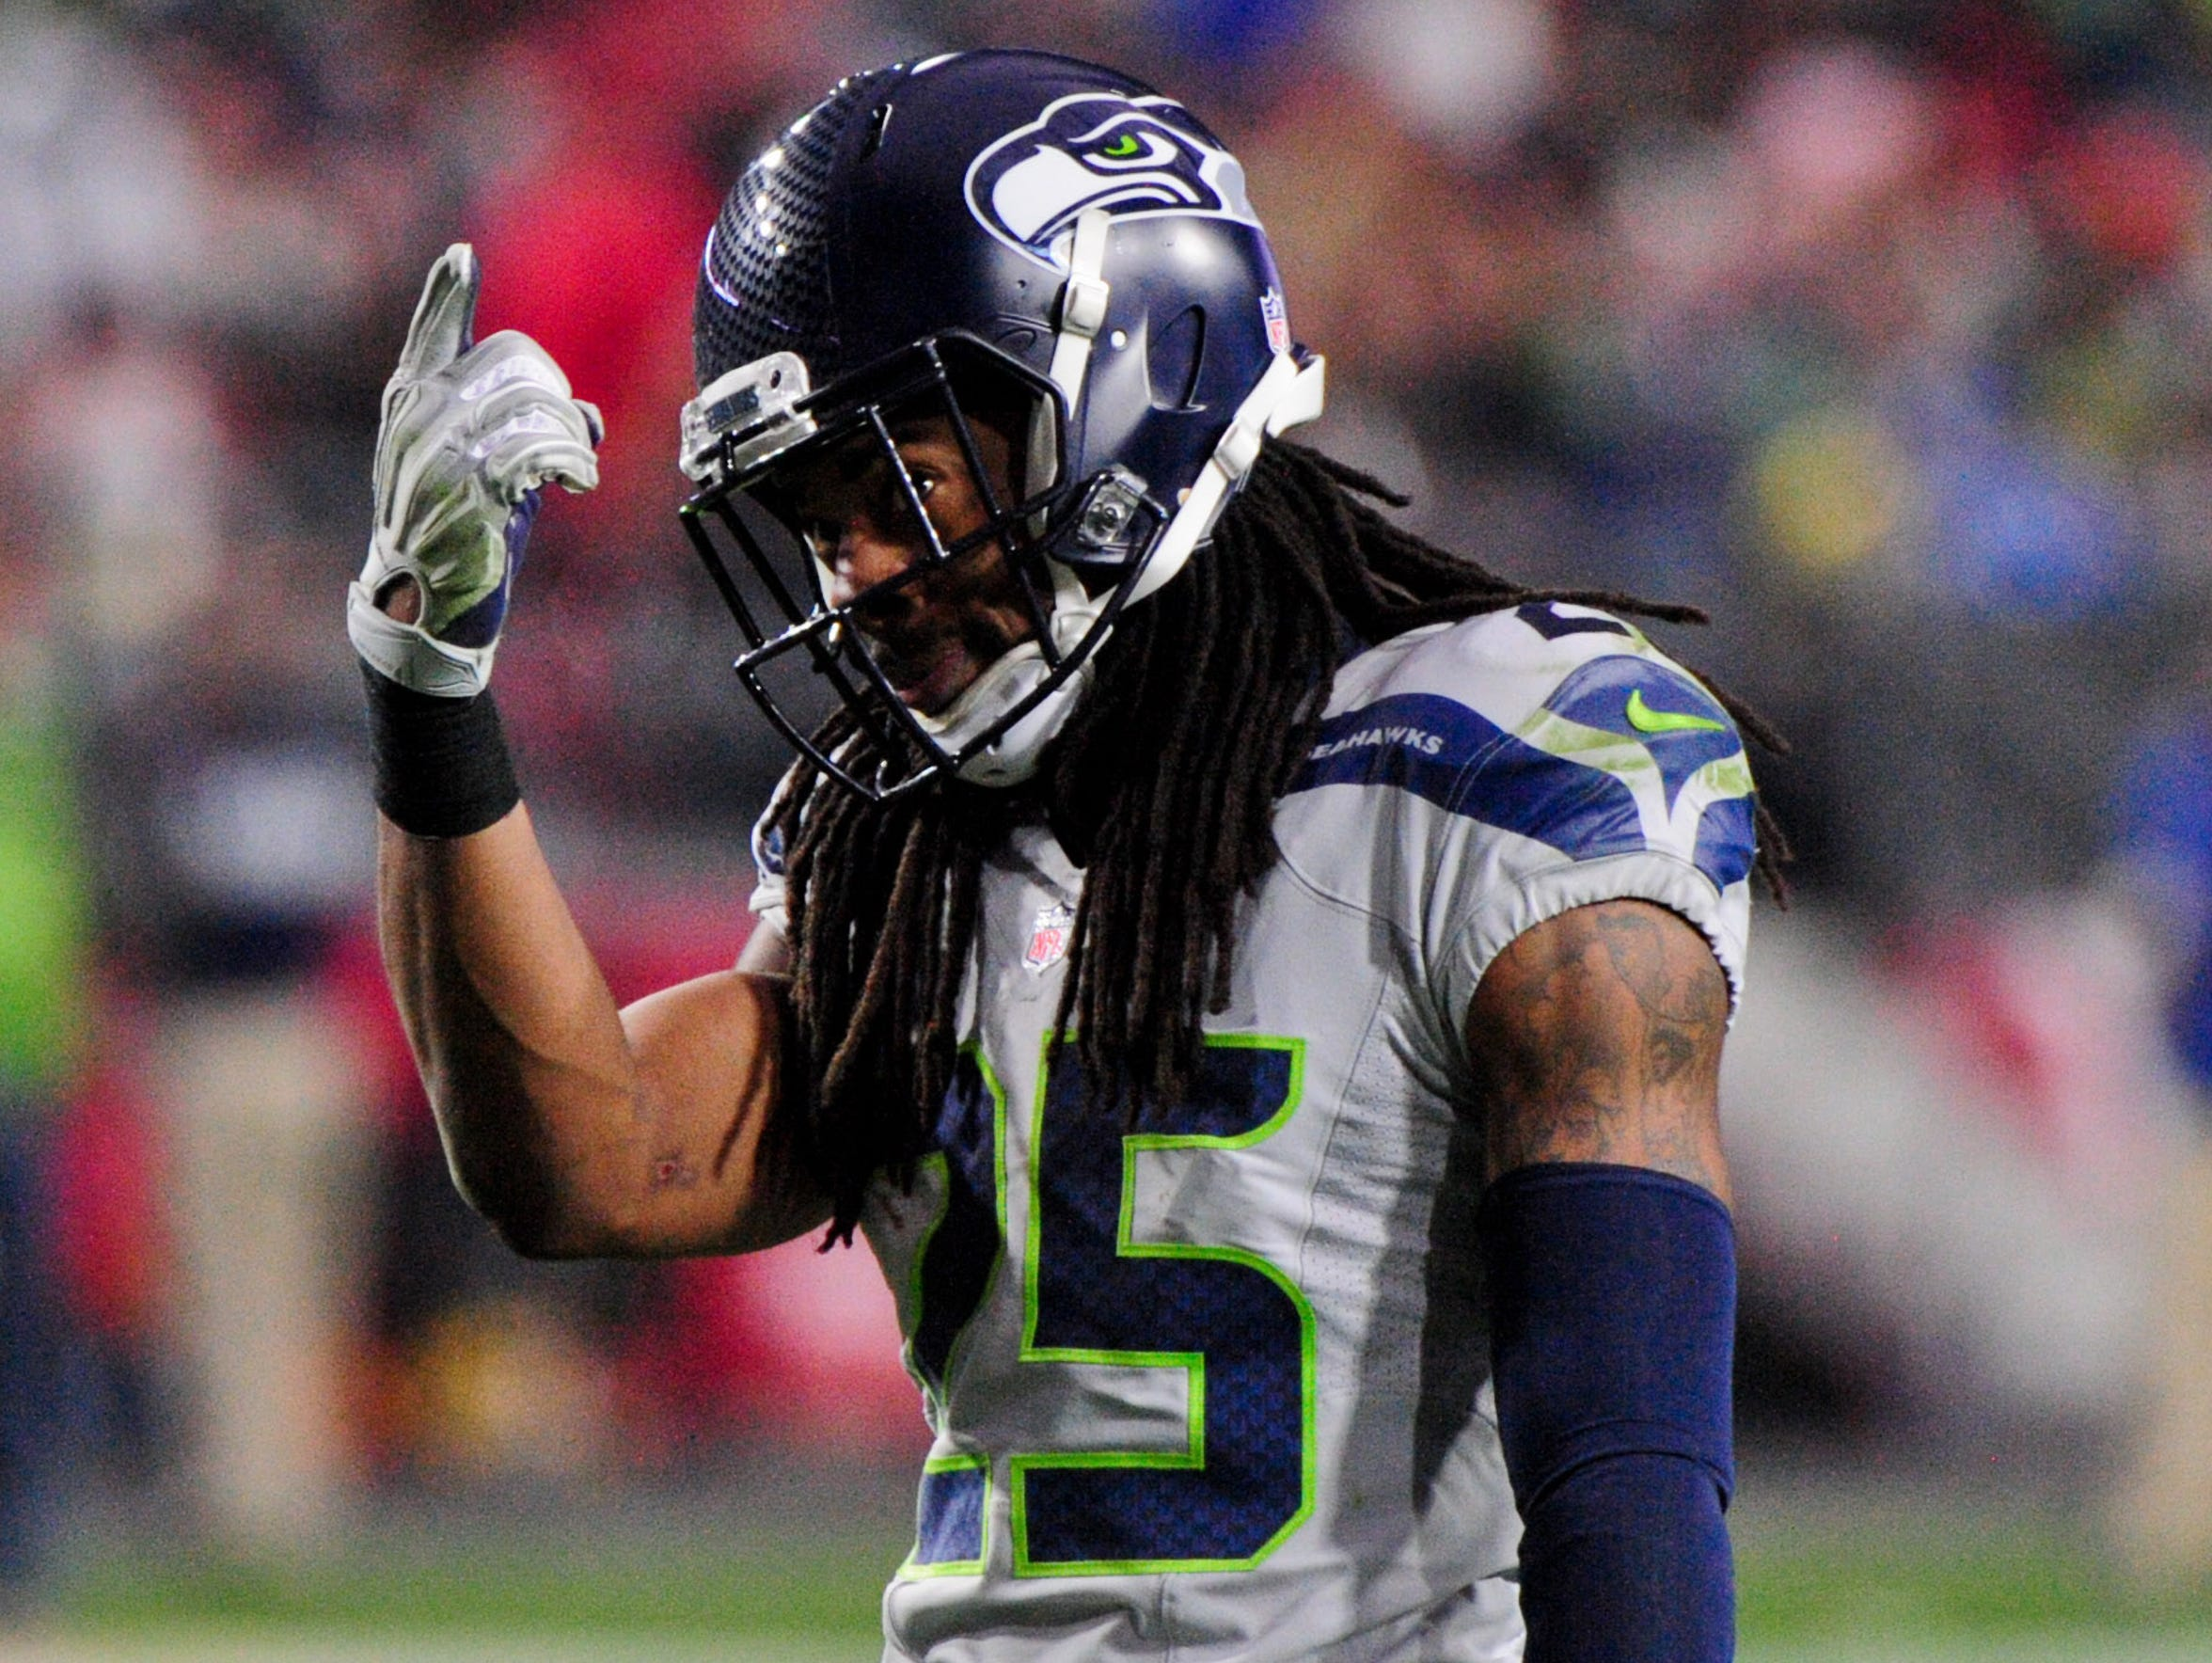 Richard Sherman gestures during a game against the